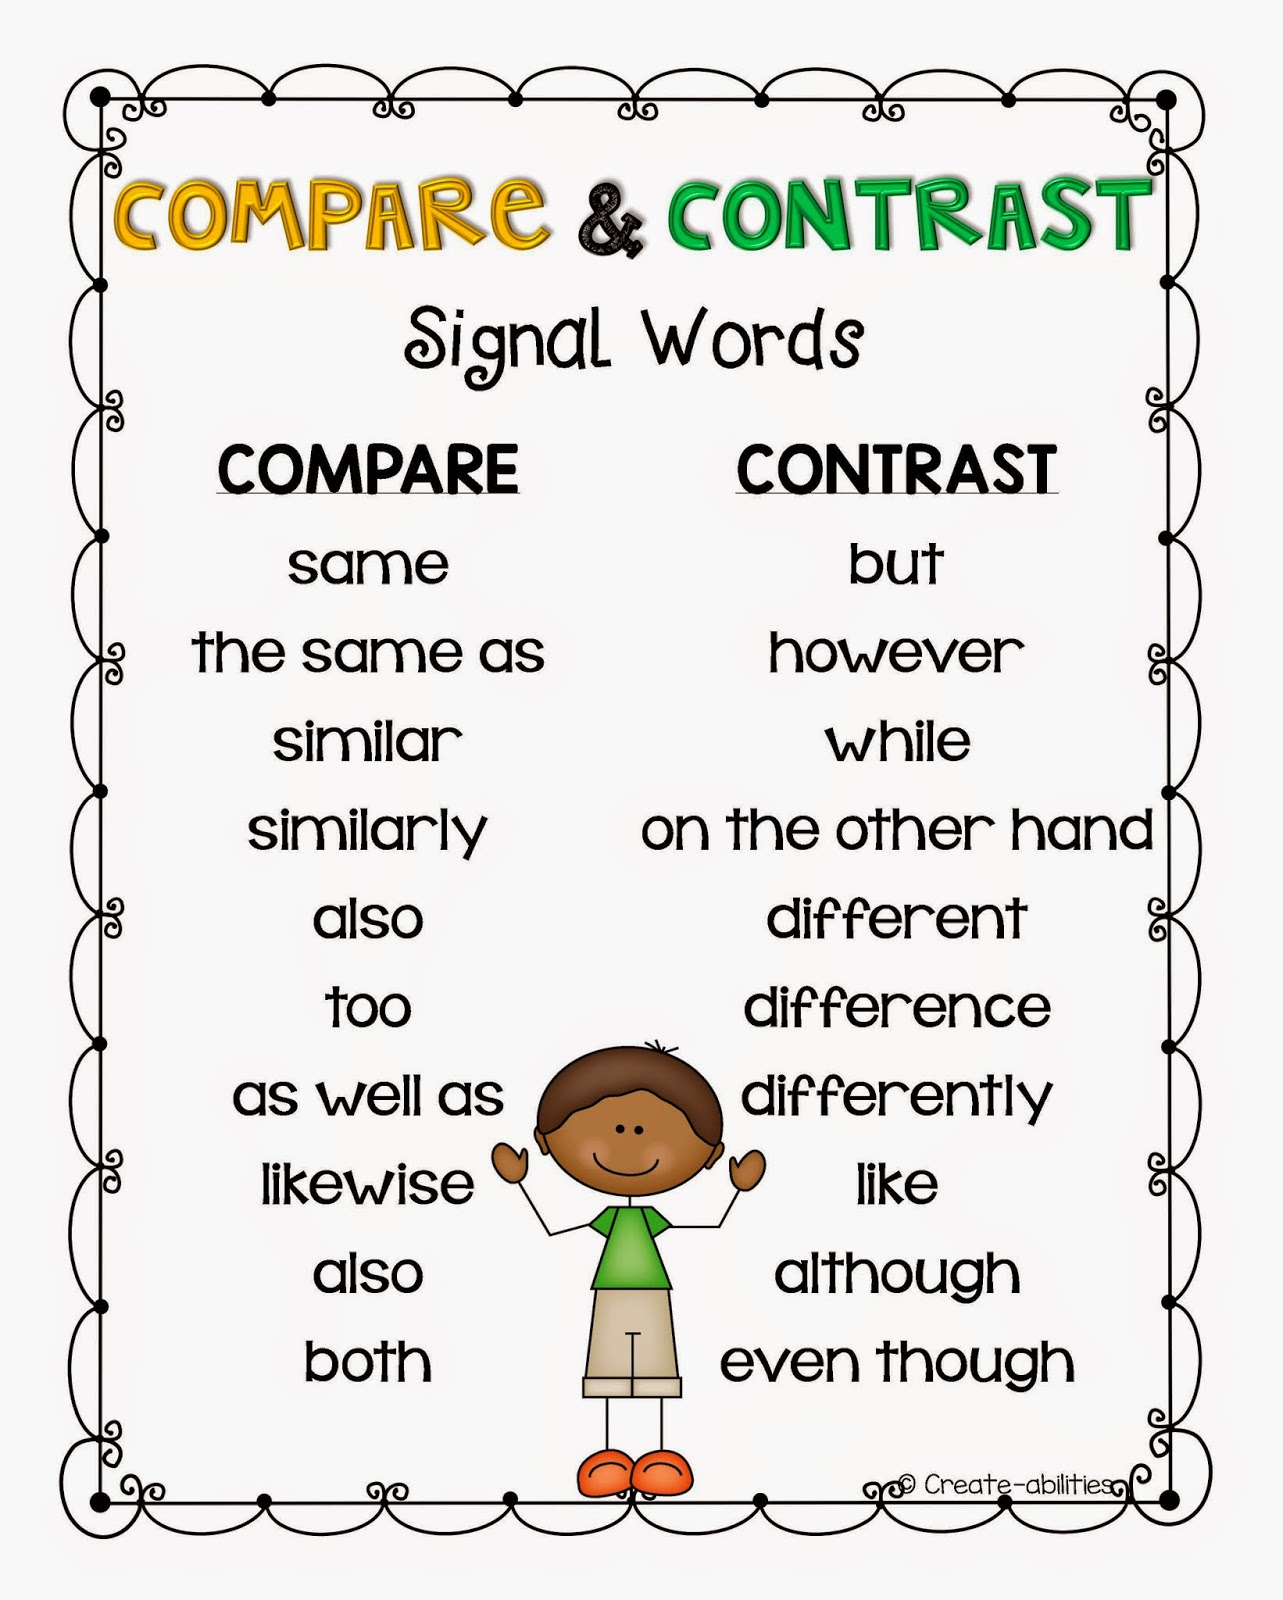 transition words when writing a compare and contrast essay